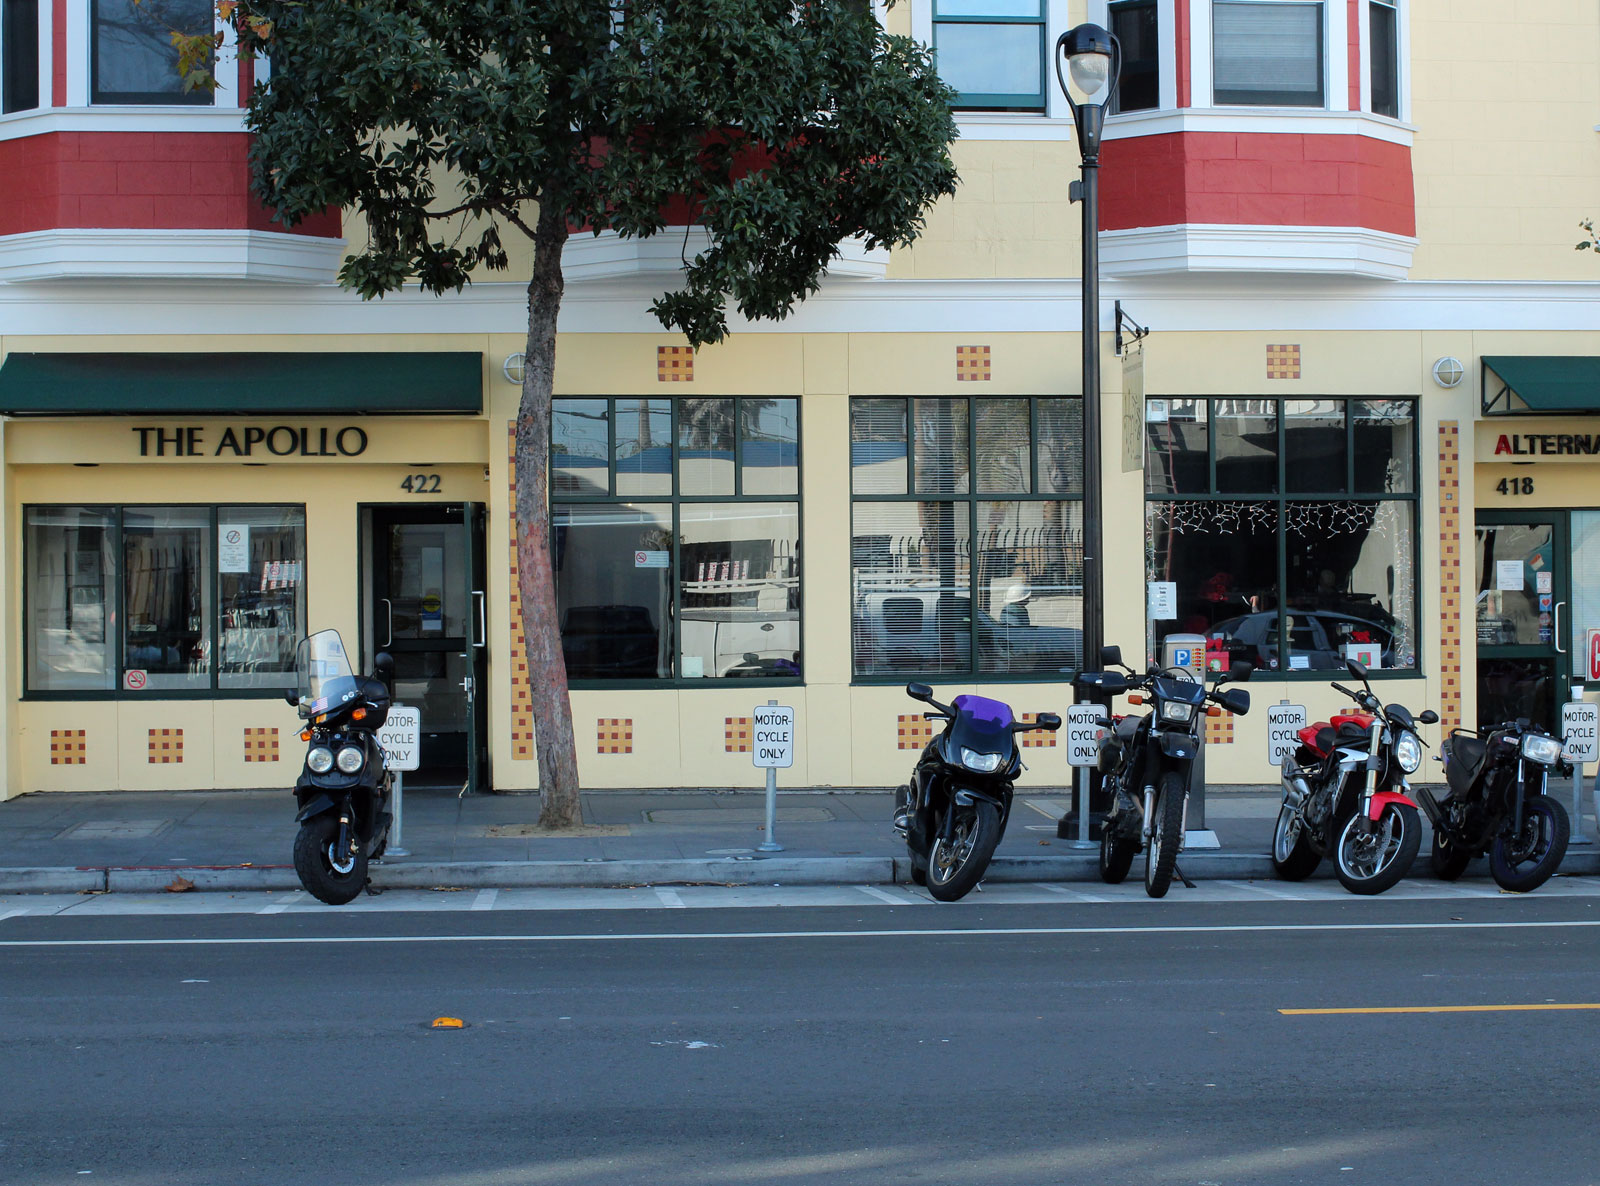 A motobike sits apart from three others